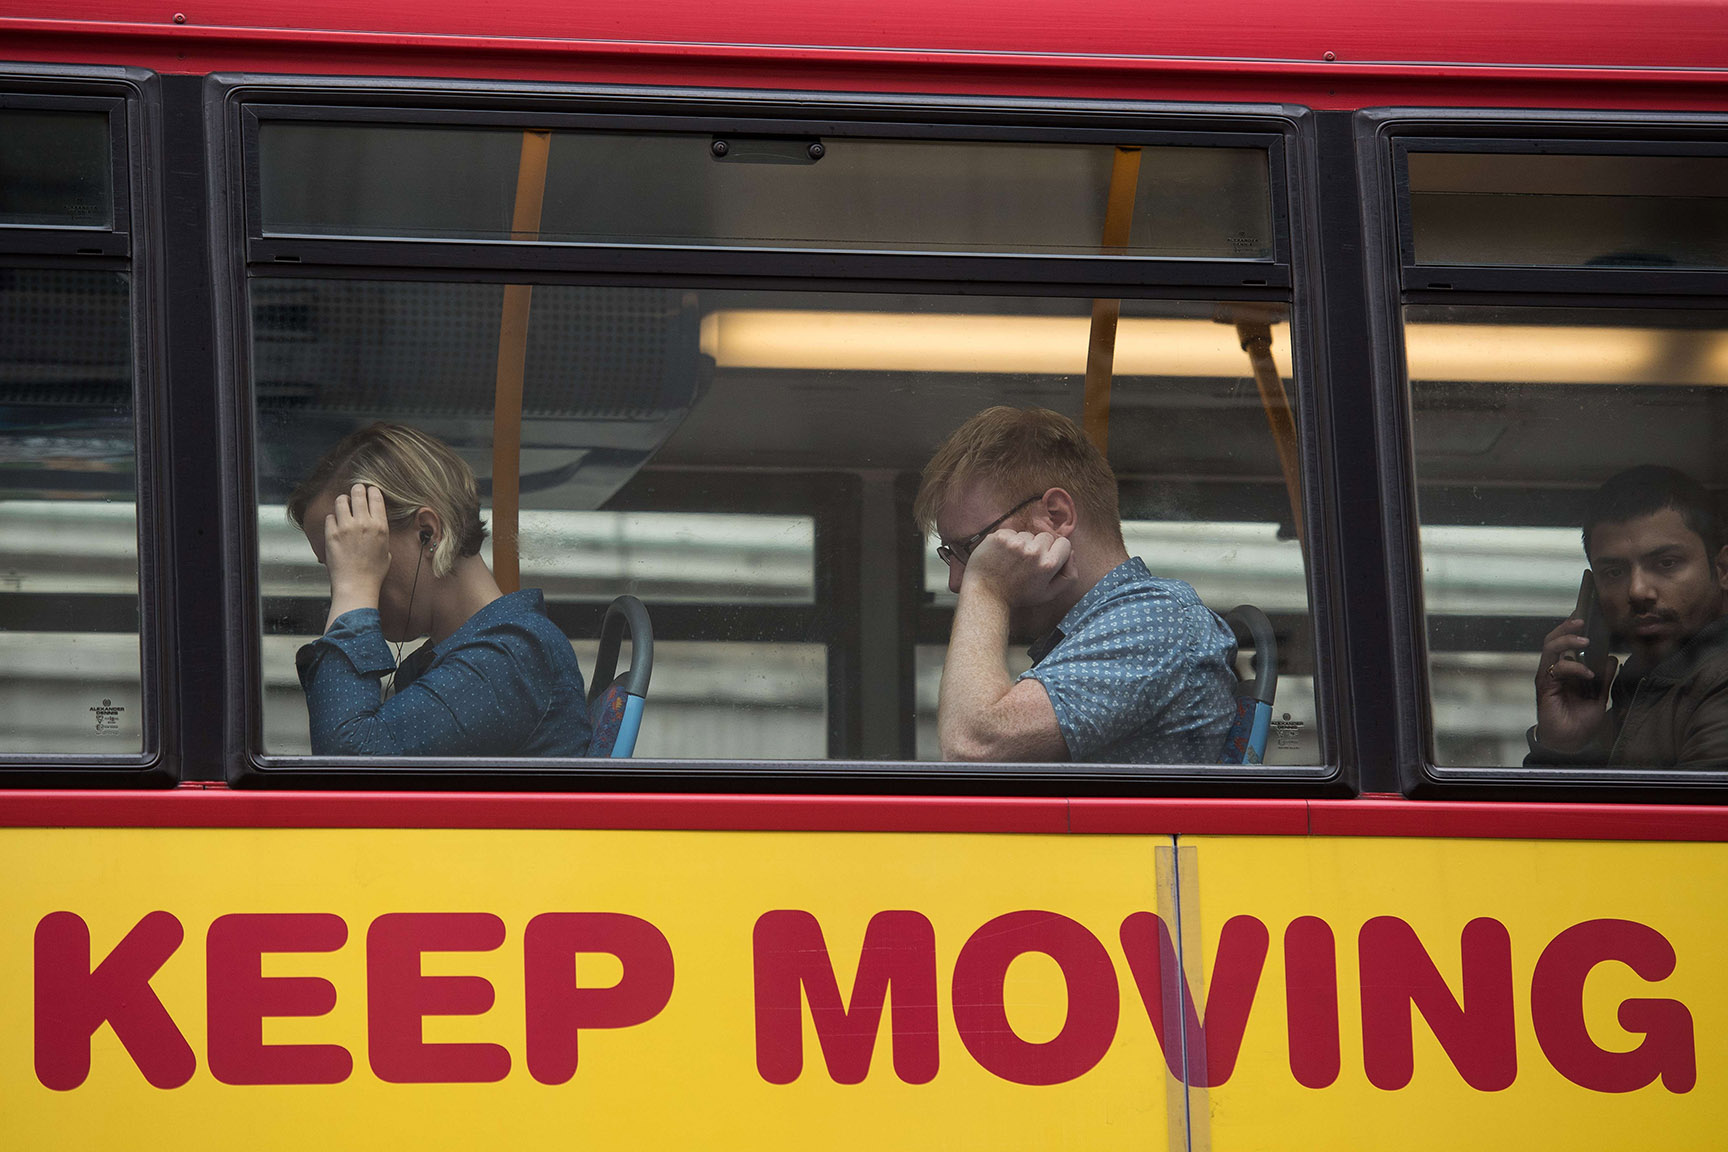 Commuters sit in traffic on a bus